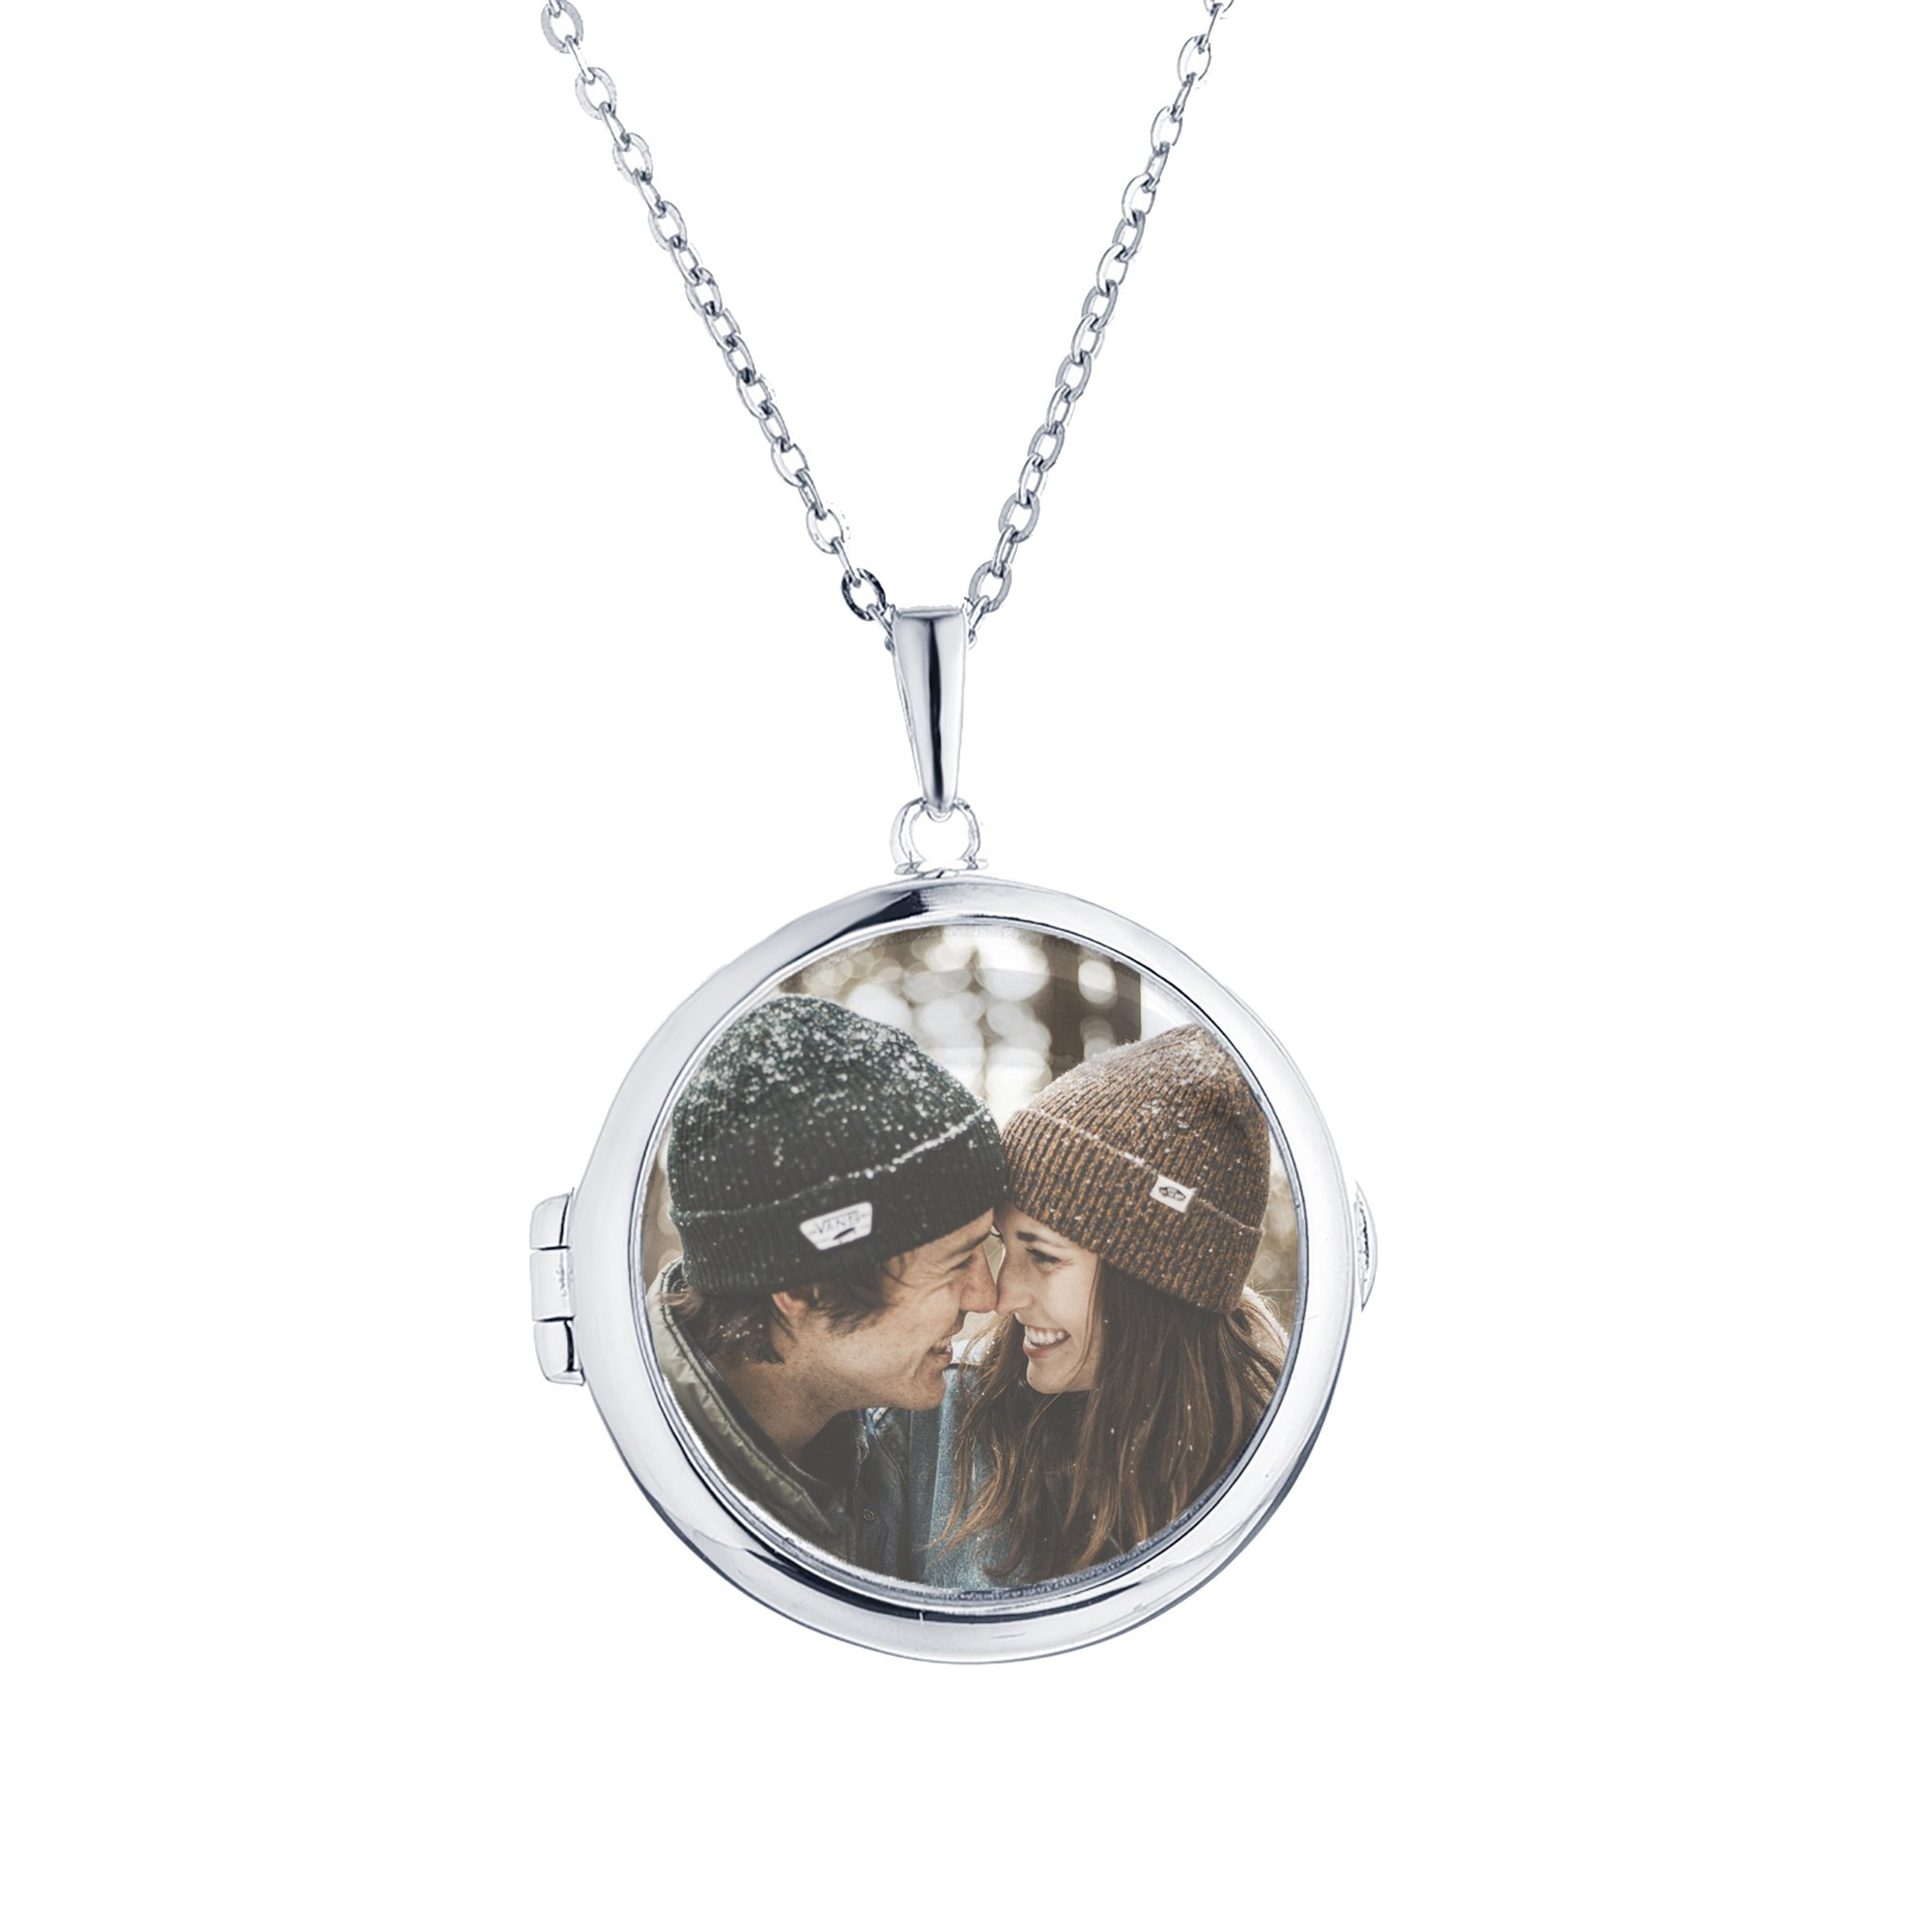 With You Lockets-Sterling Silver-Glass-Custom Photo Locket Necklace-That Holds Pictures for Women-The Zoe